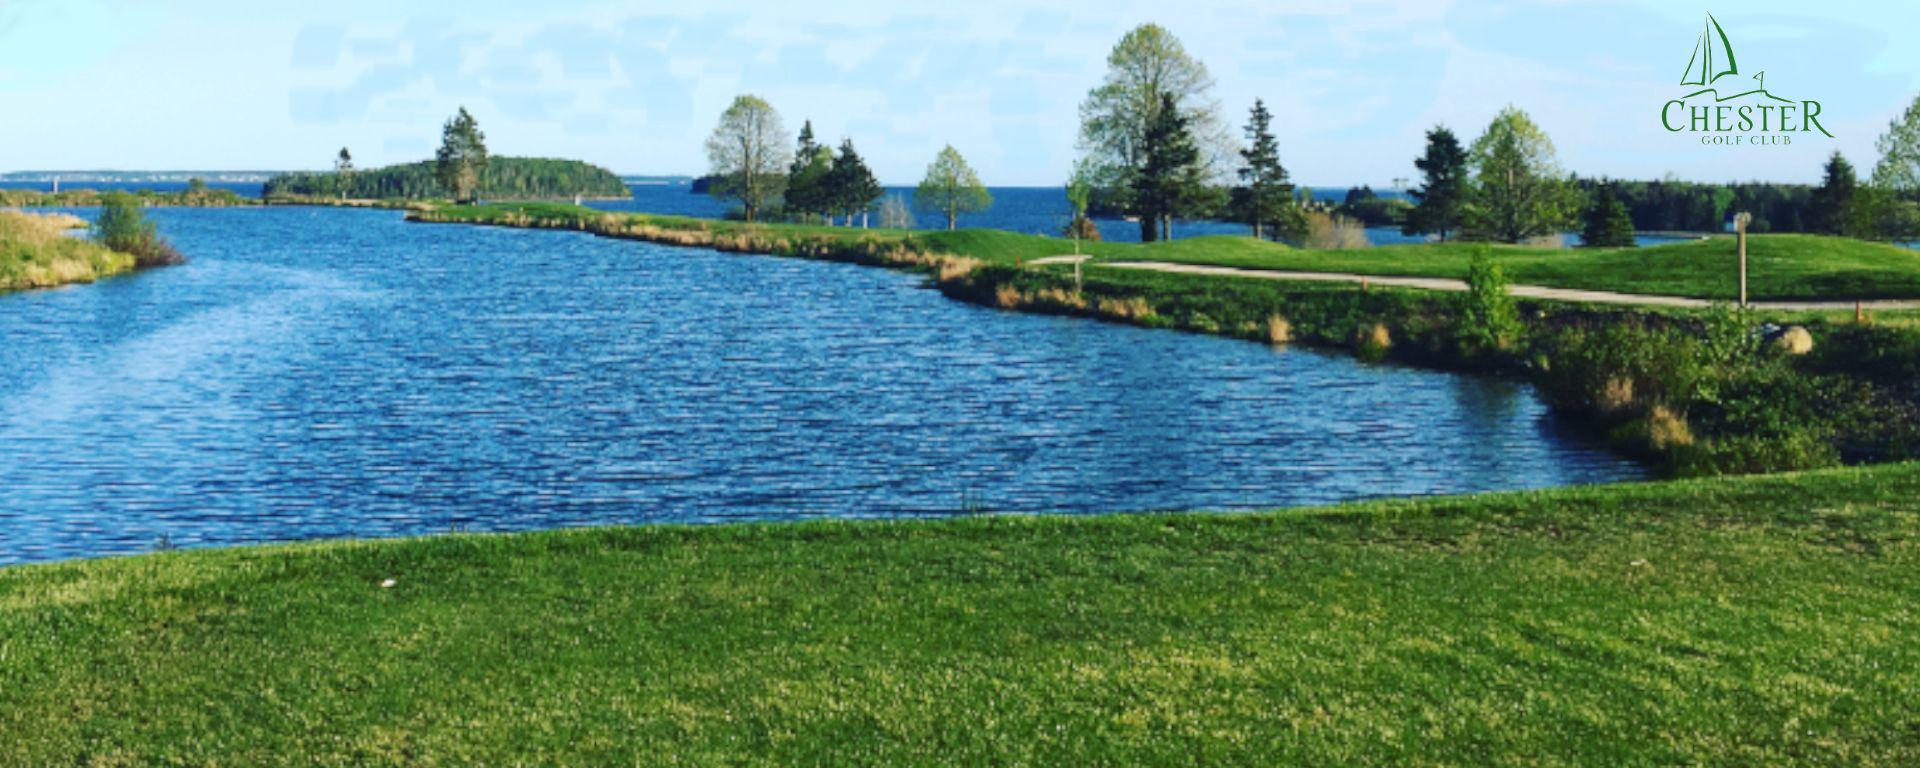 2019 MJT Bell Aliant Series at Chester Golf Club - May 25-26